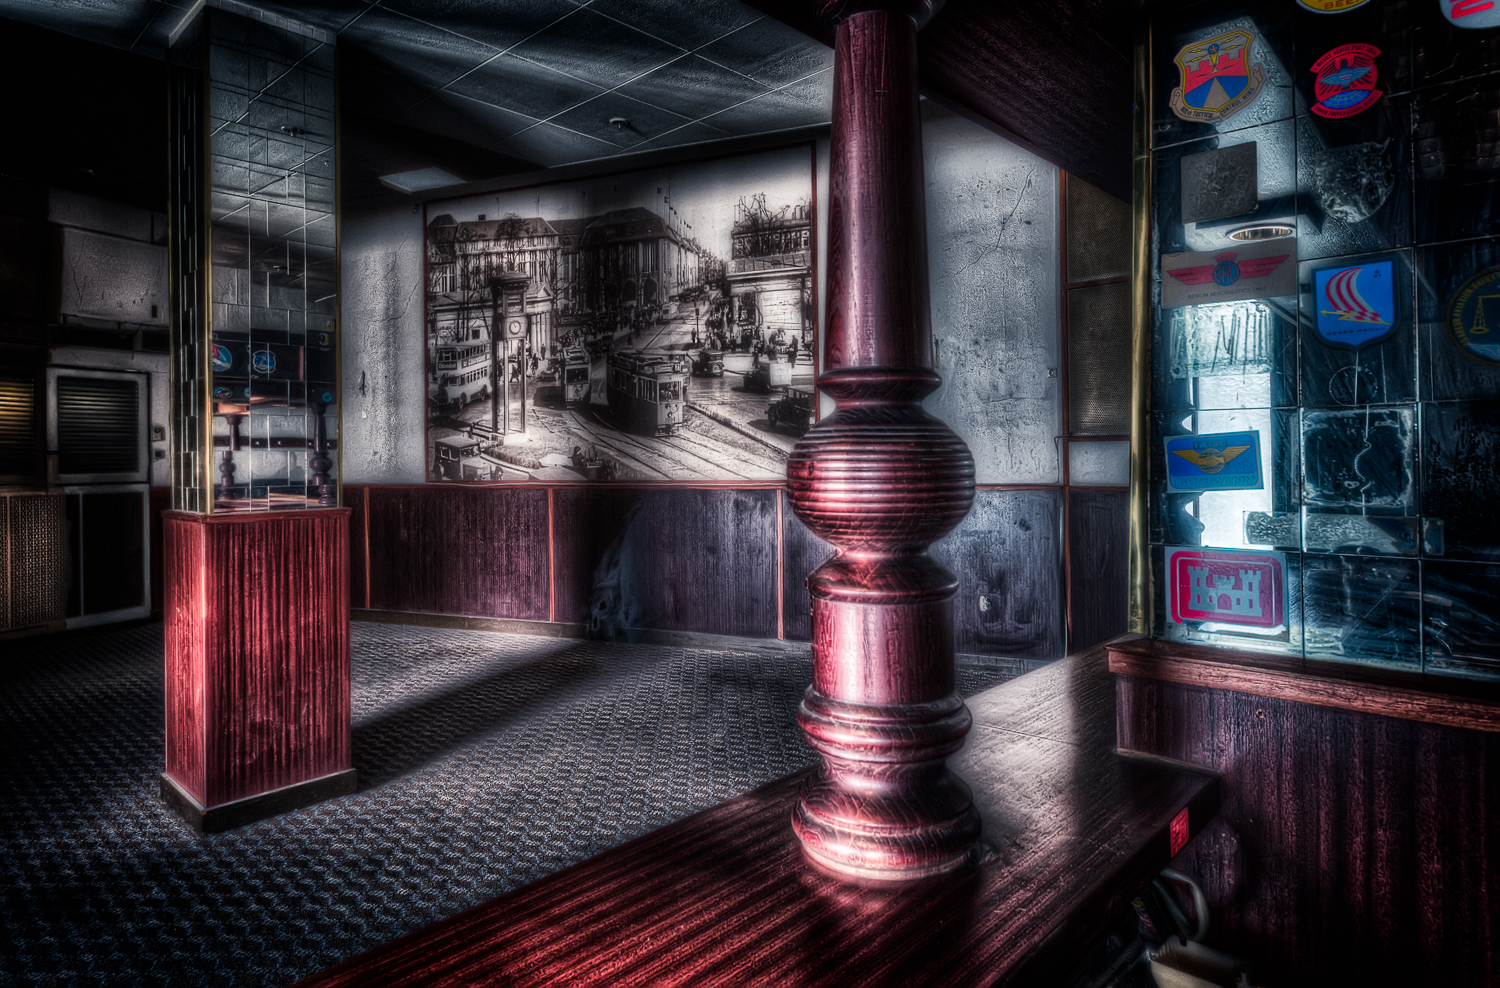 The old bar - Missing Martinis